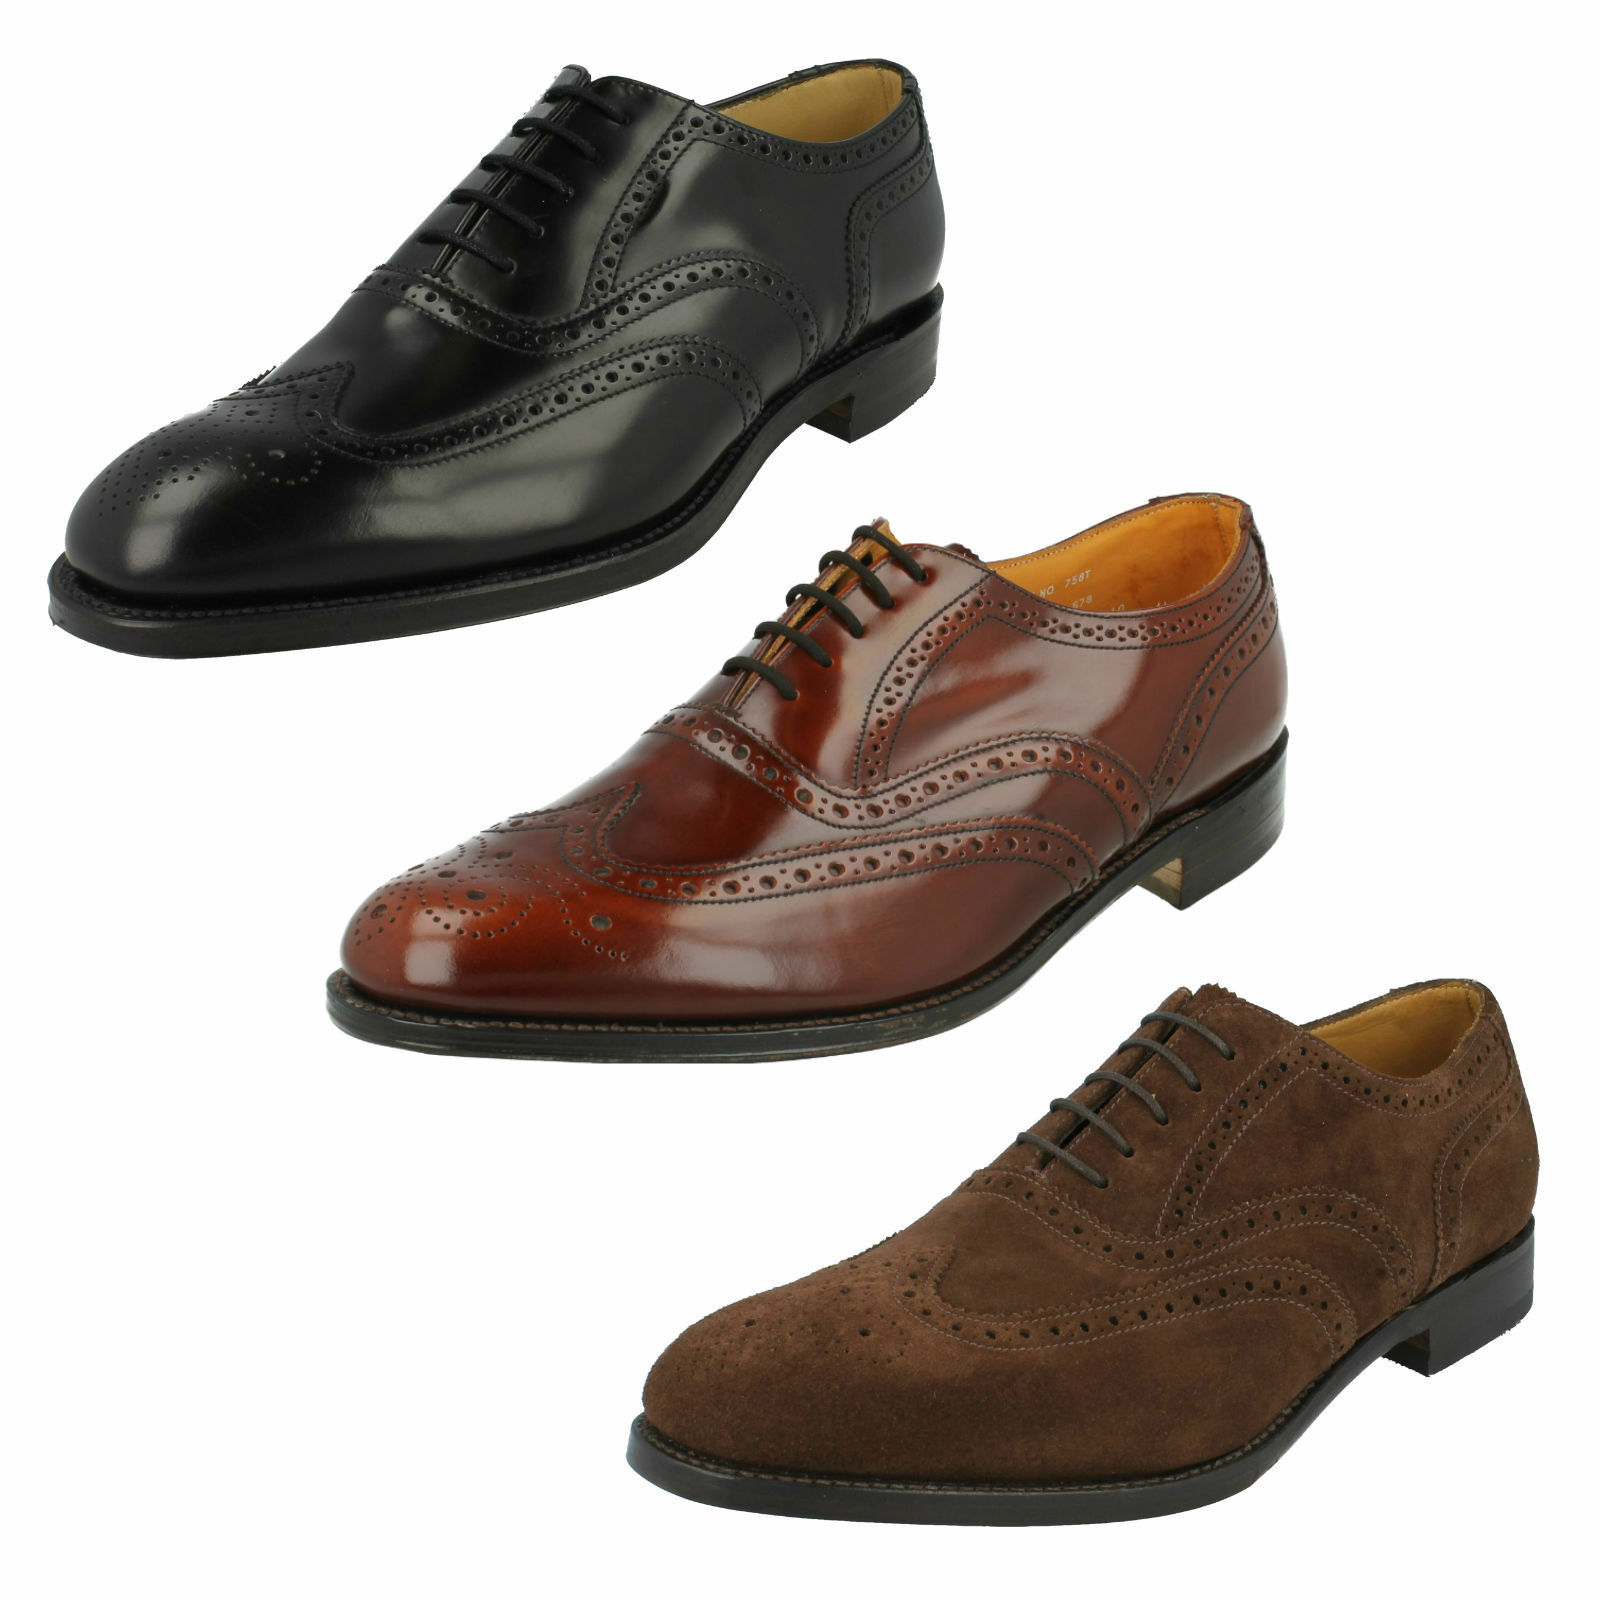 MENS LOAKE 758 POLIZIOTTO DI LEADER SMART WORK  SHOHE UK Dimensione 8  autentico